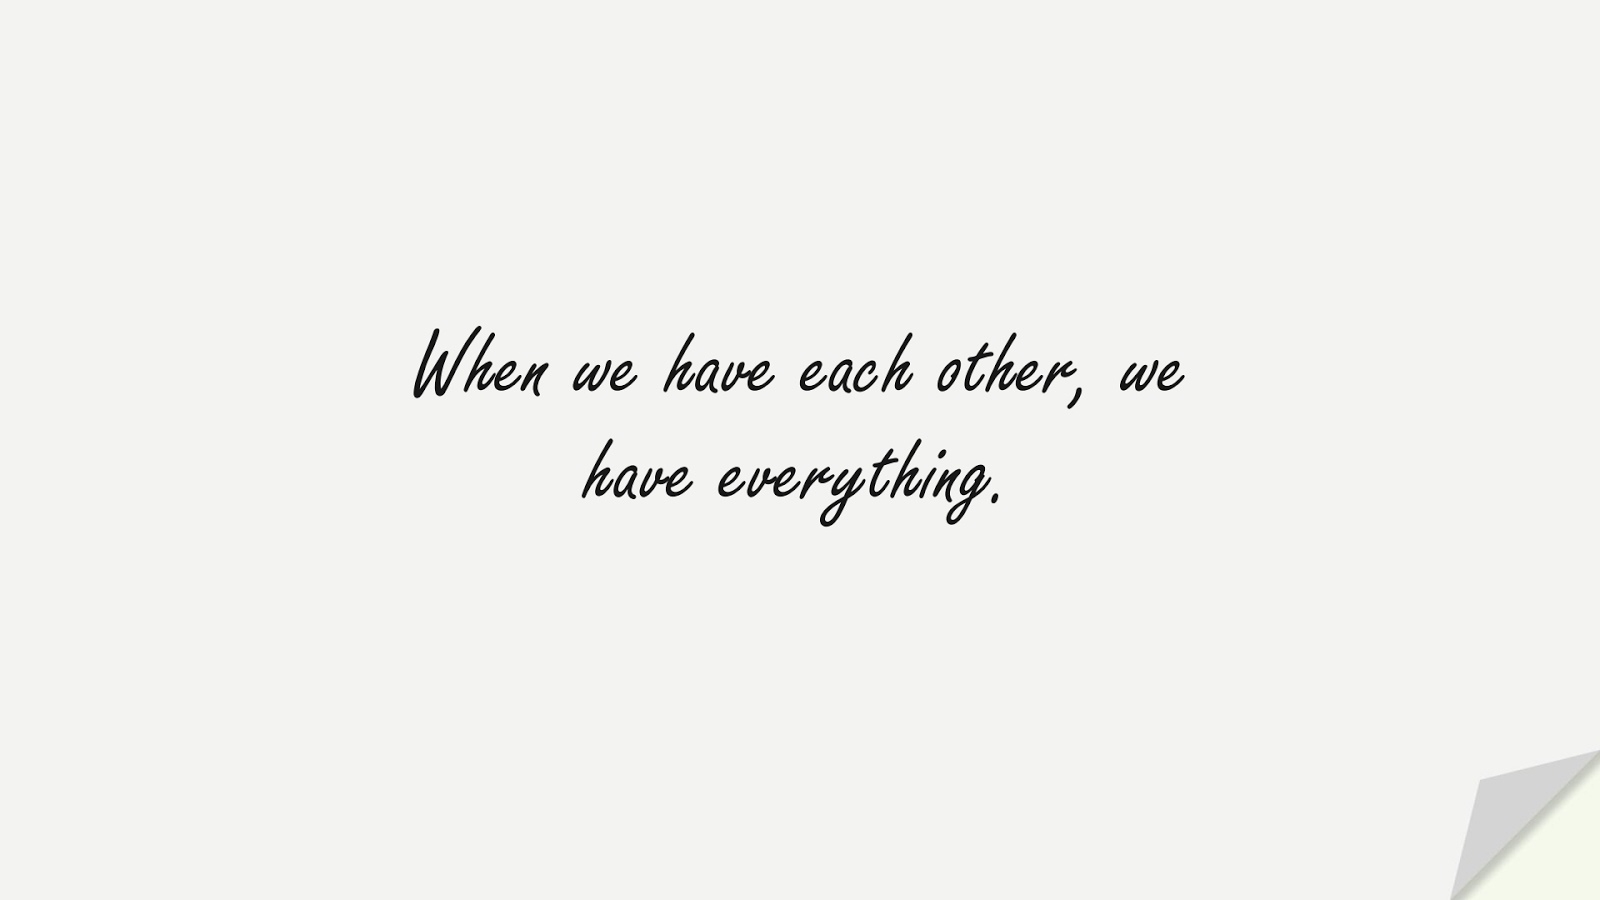 When we have each other, we have everything.FALSE